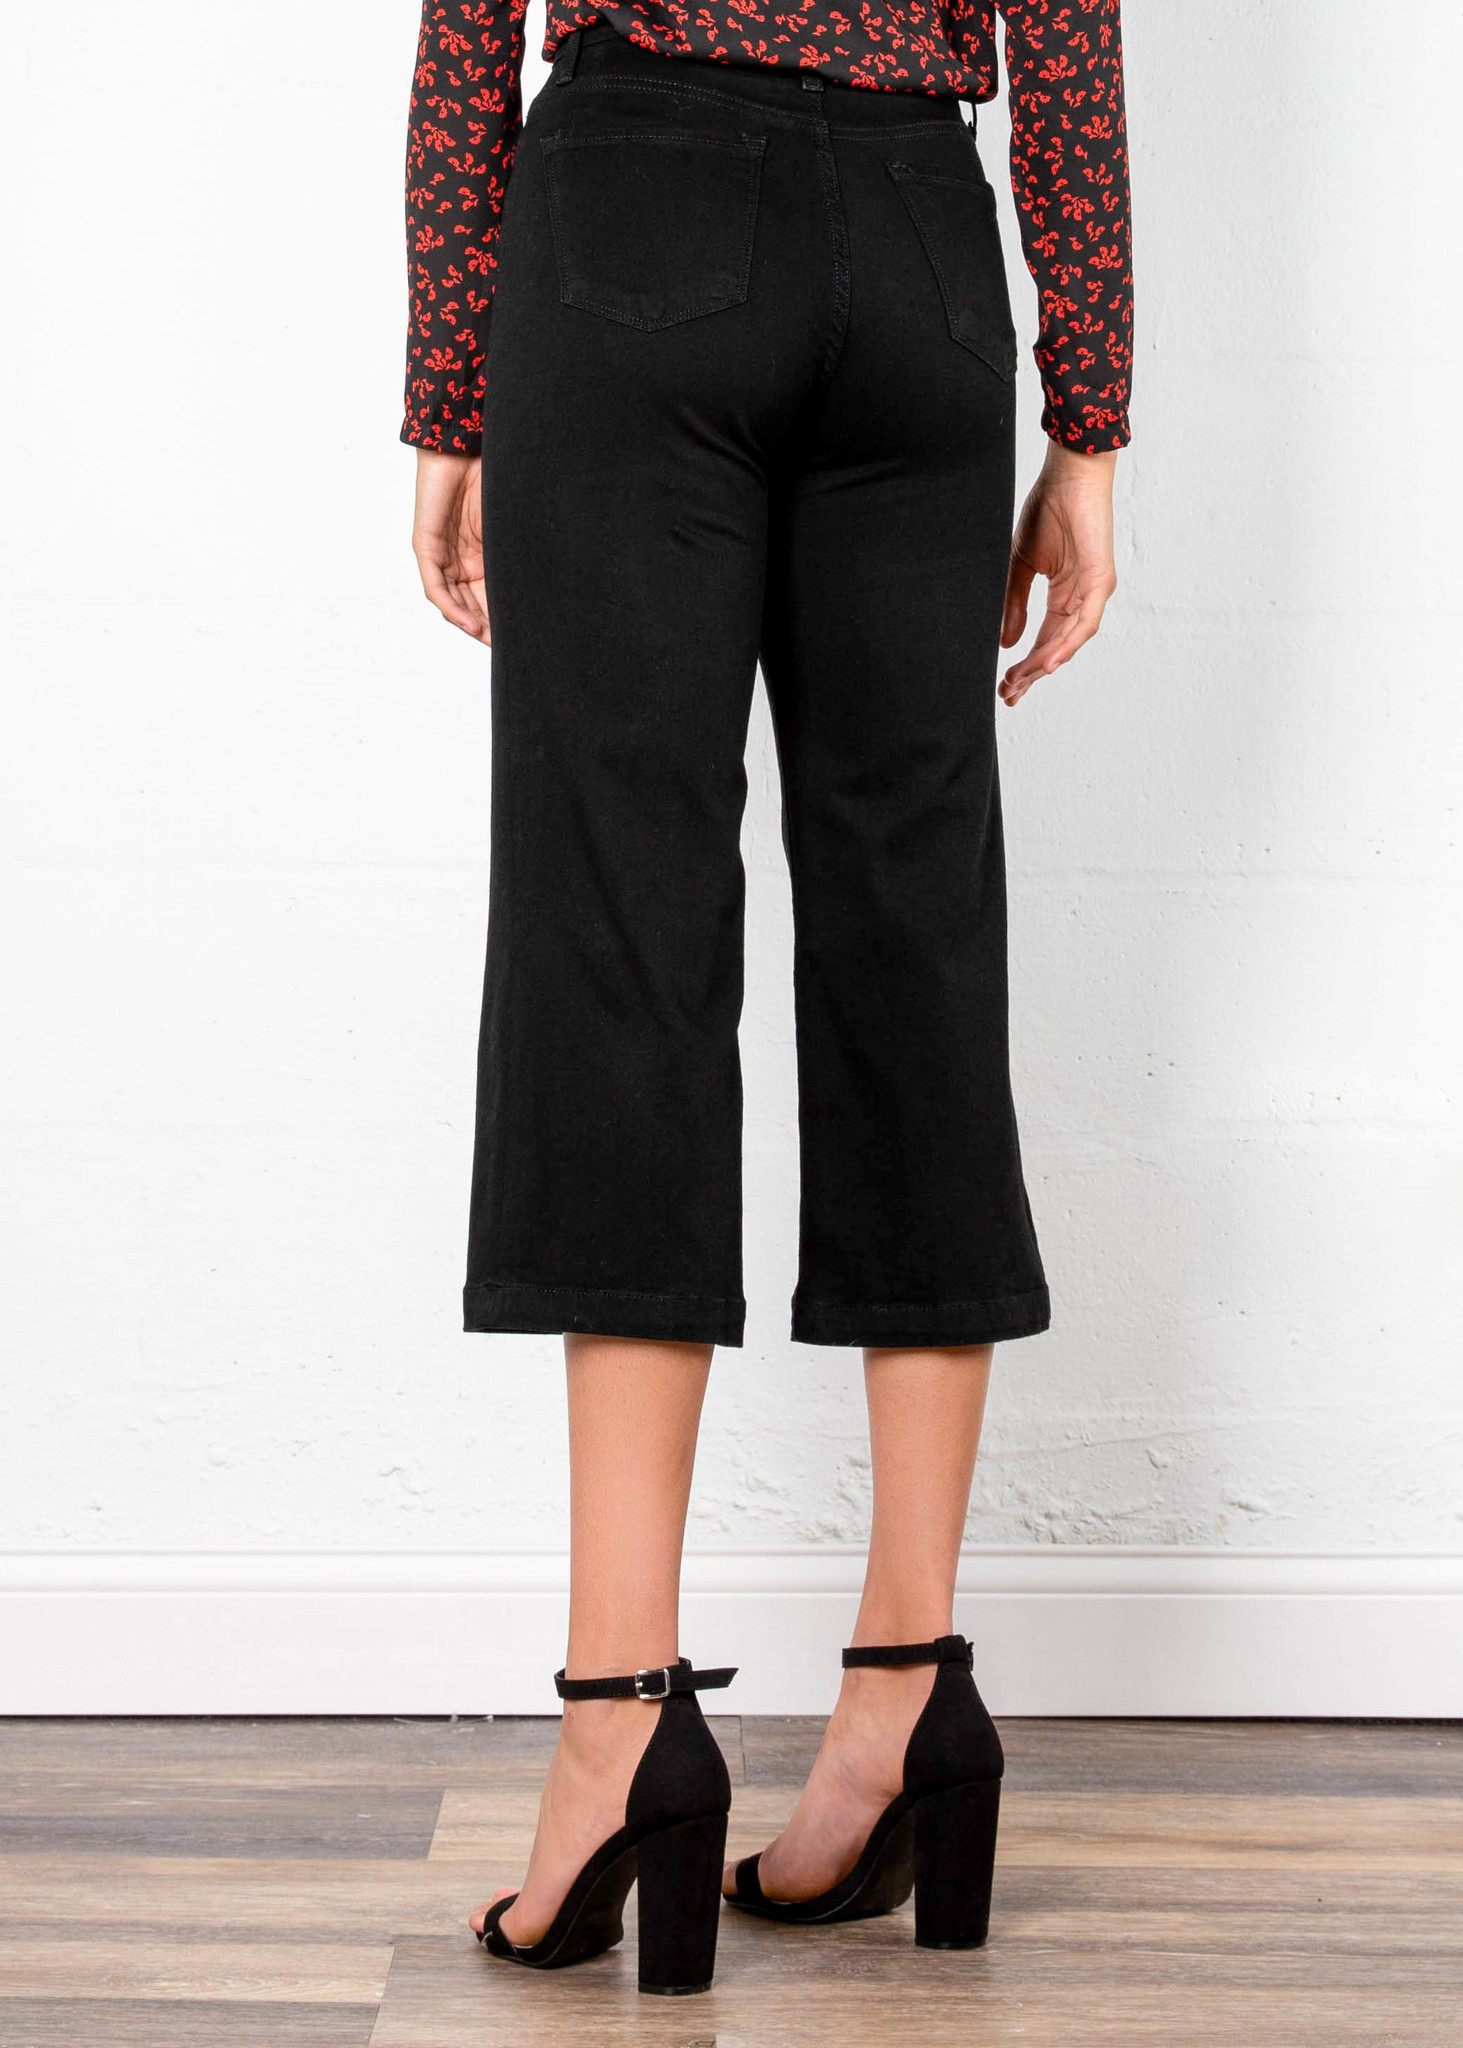 THE WORKS CROPPED BLACK JEANS